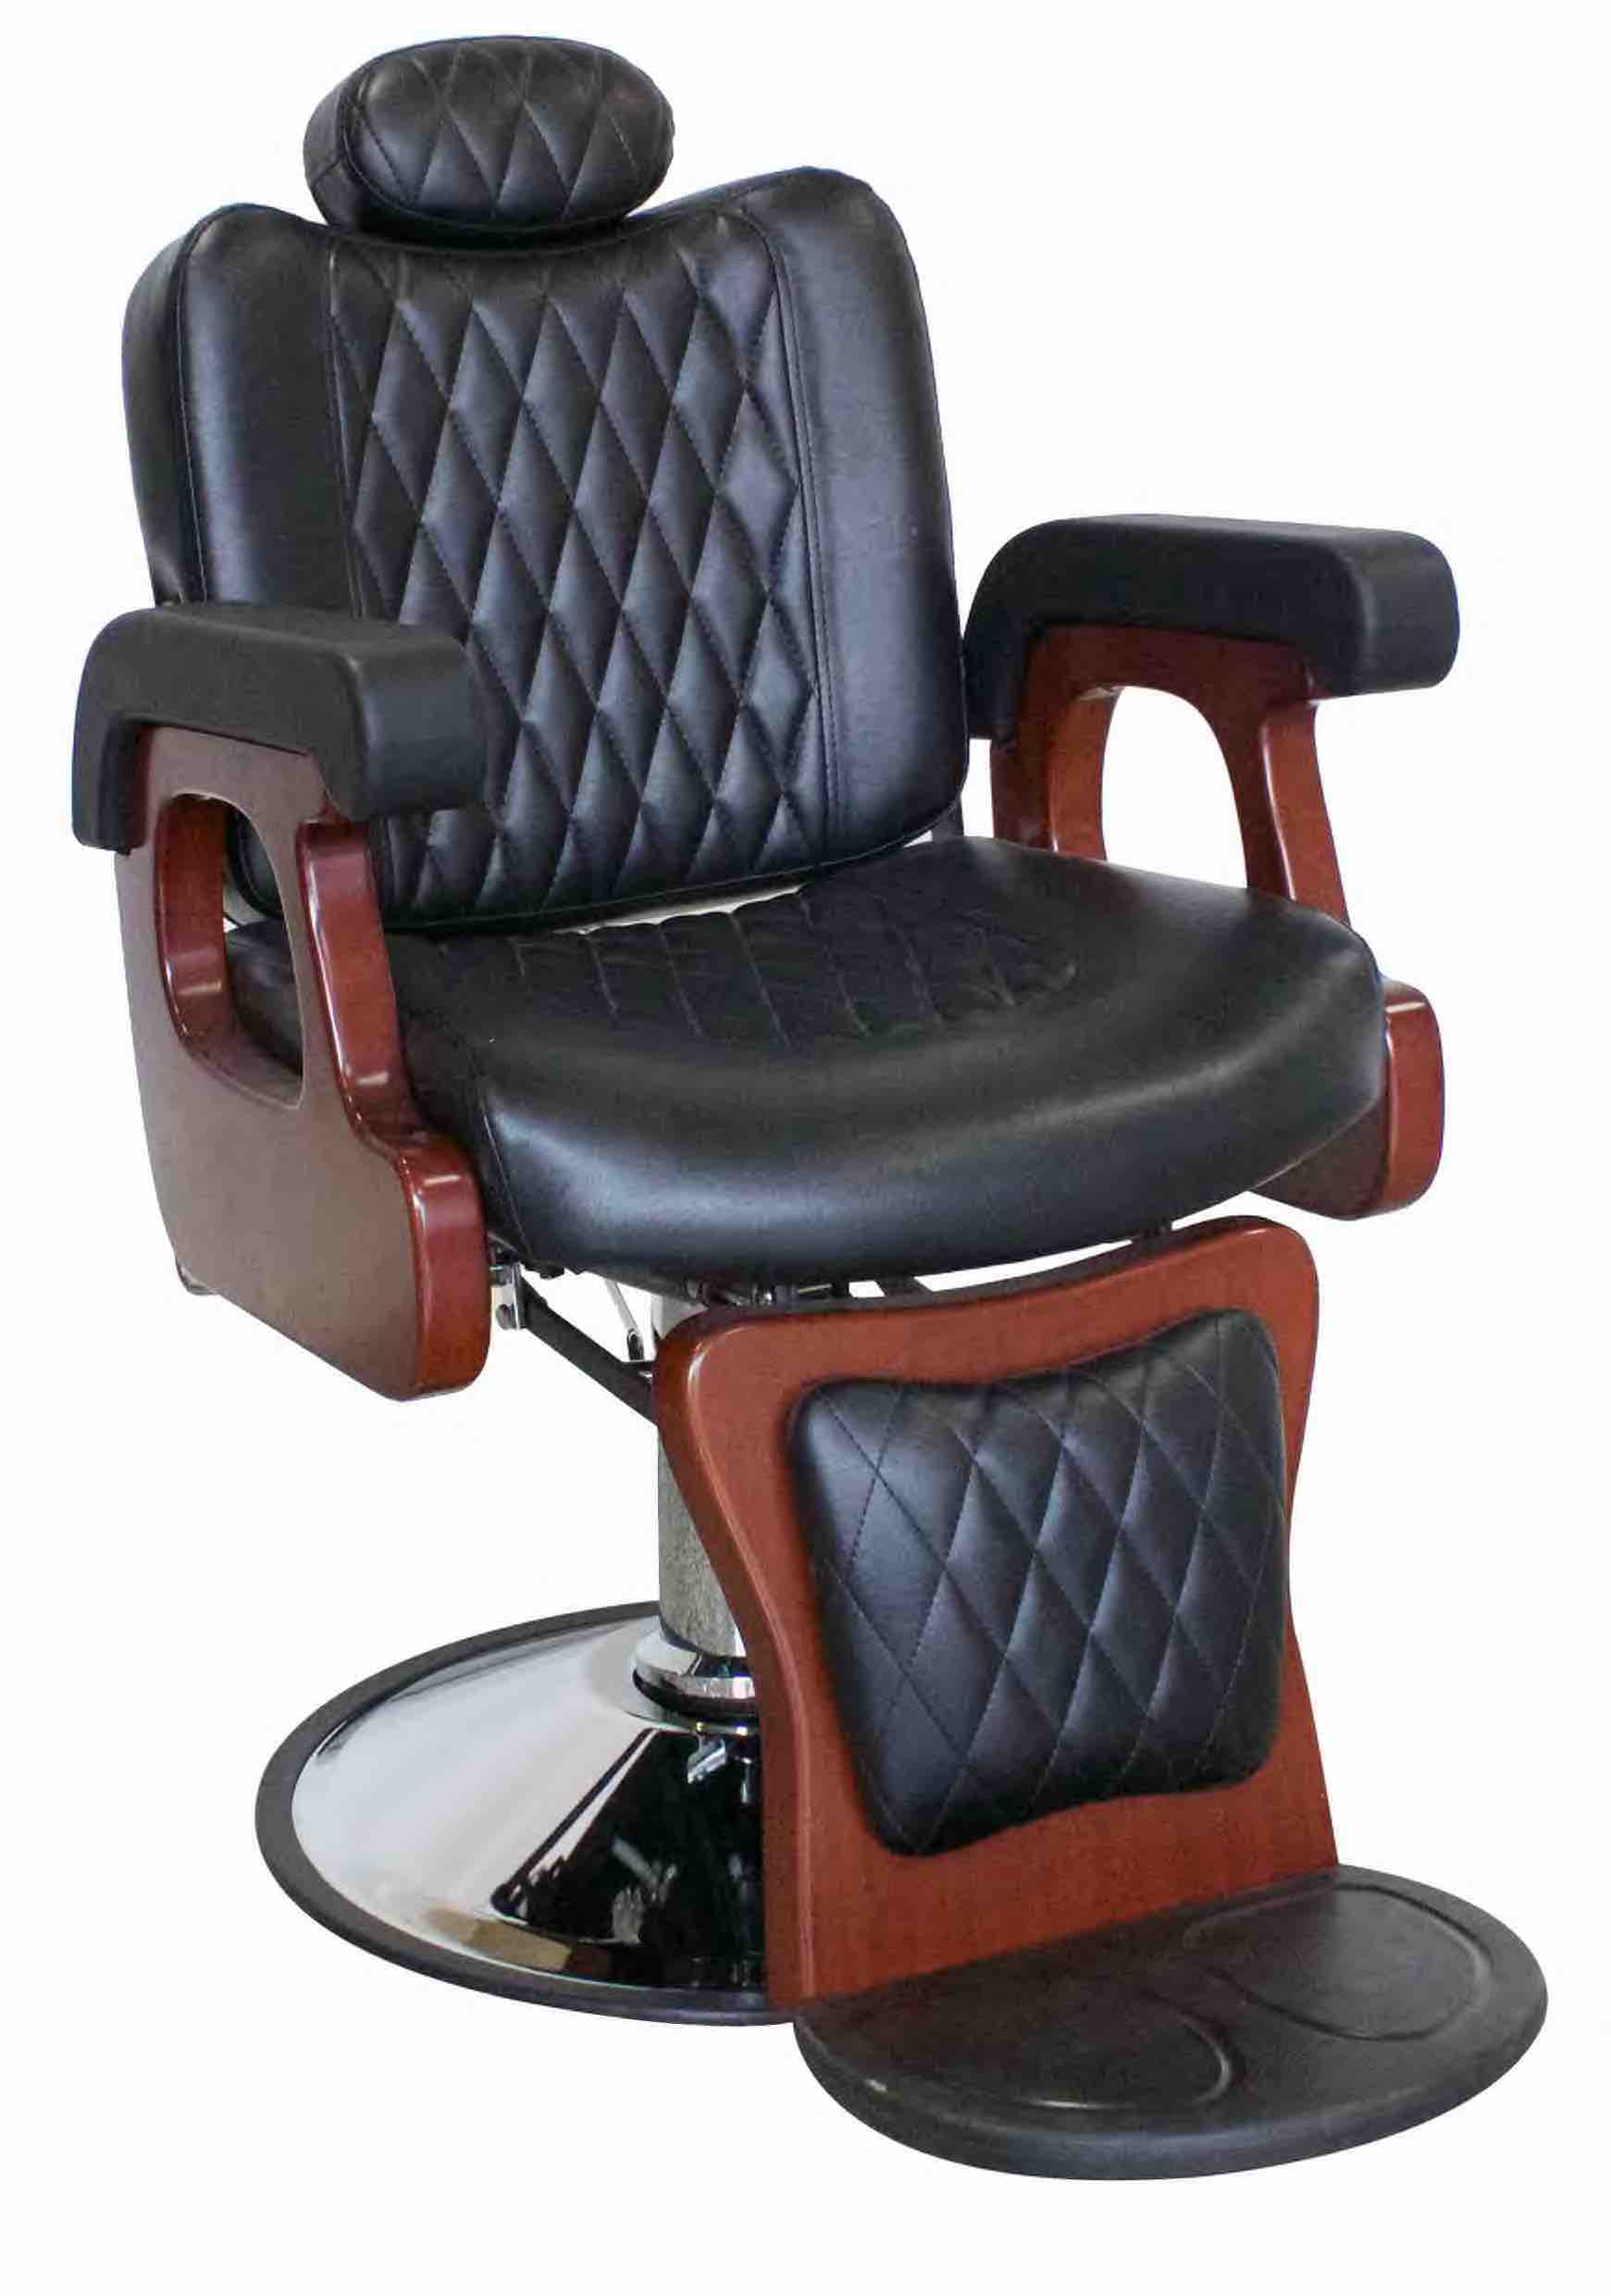 headrest for barber chair hanging mexico hackney all purpose with recline optional